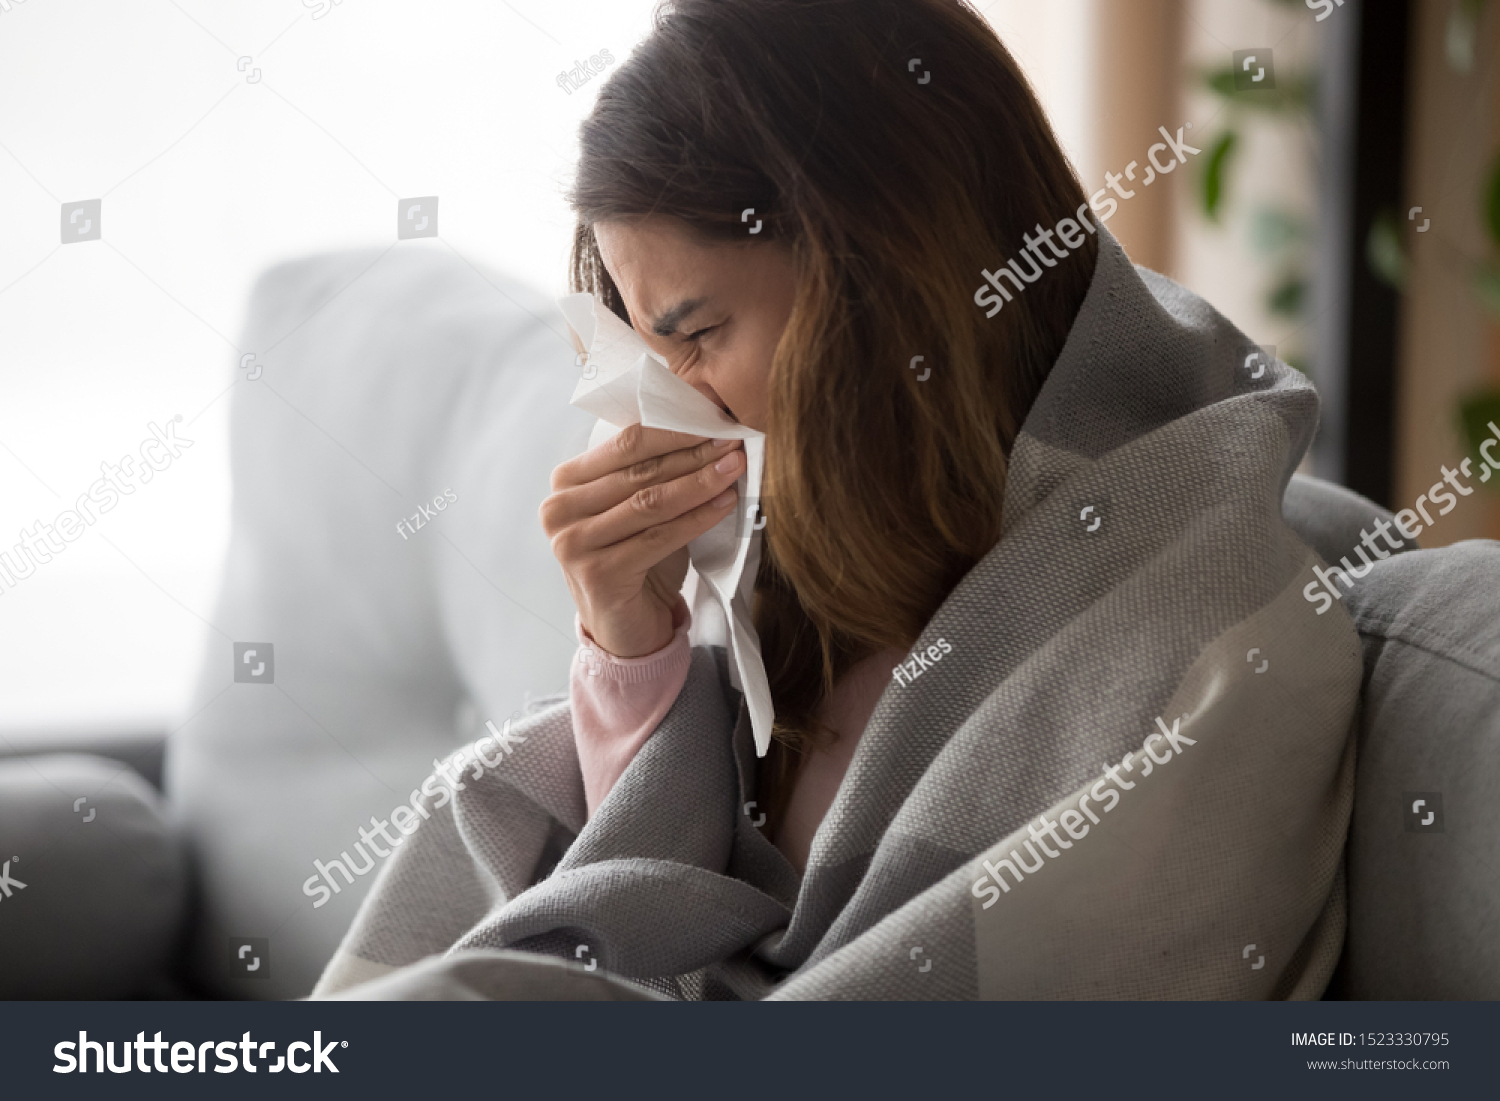 Ill upset young woman sitting on sofa covered with blanket freezing blowing running nose got fever caught cold sneezing in tissue, sick girl having influenza symptoms coughing at home, flu concept #1523330795